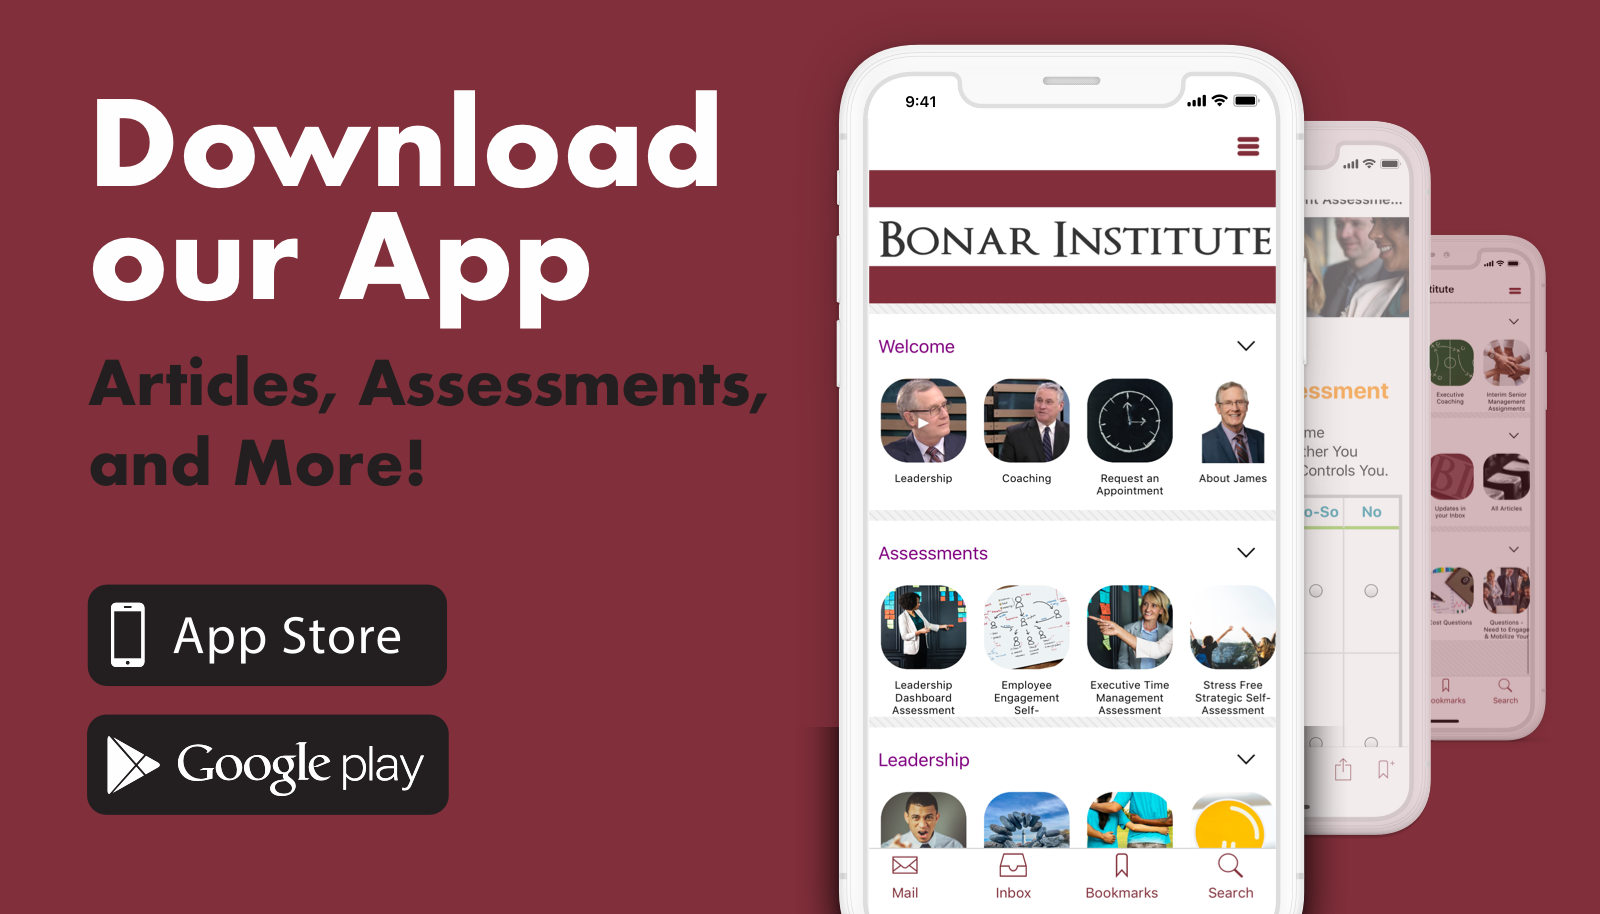 Always be up-to-date! - With evermore articles and expanding features, the Bonar Institute App is a great tool to stay in the know.